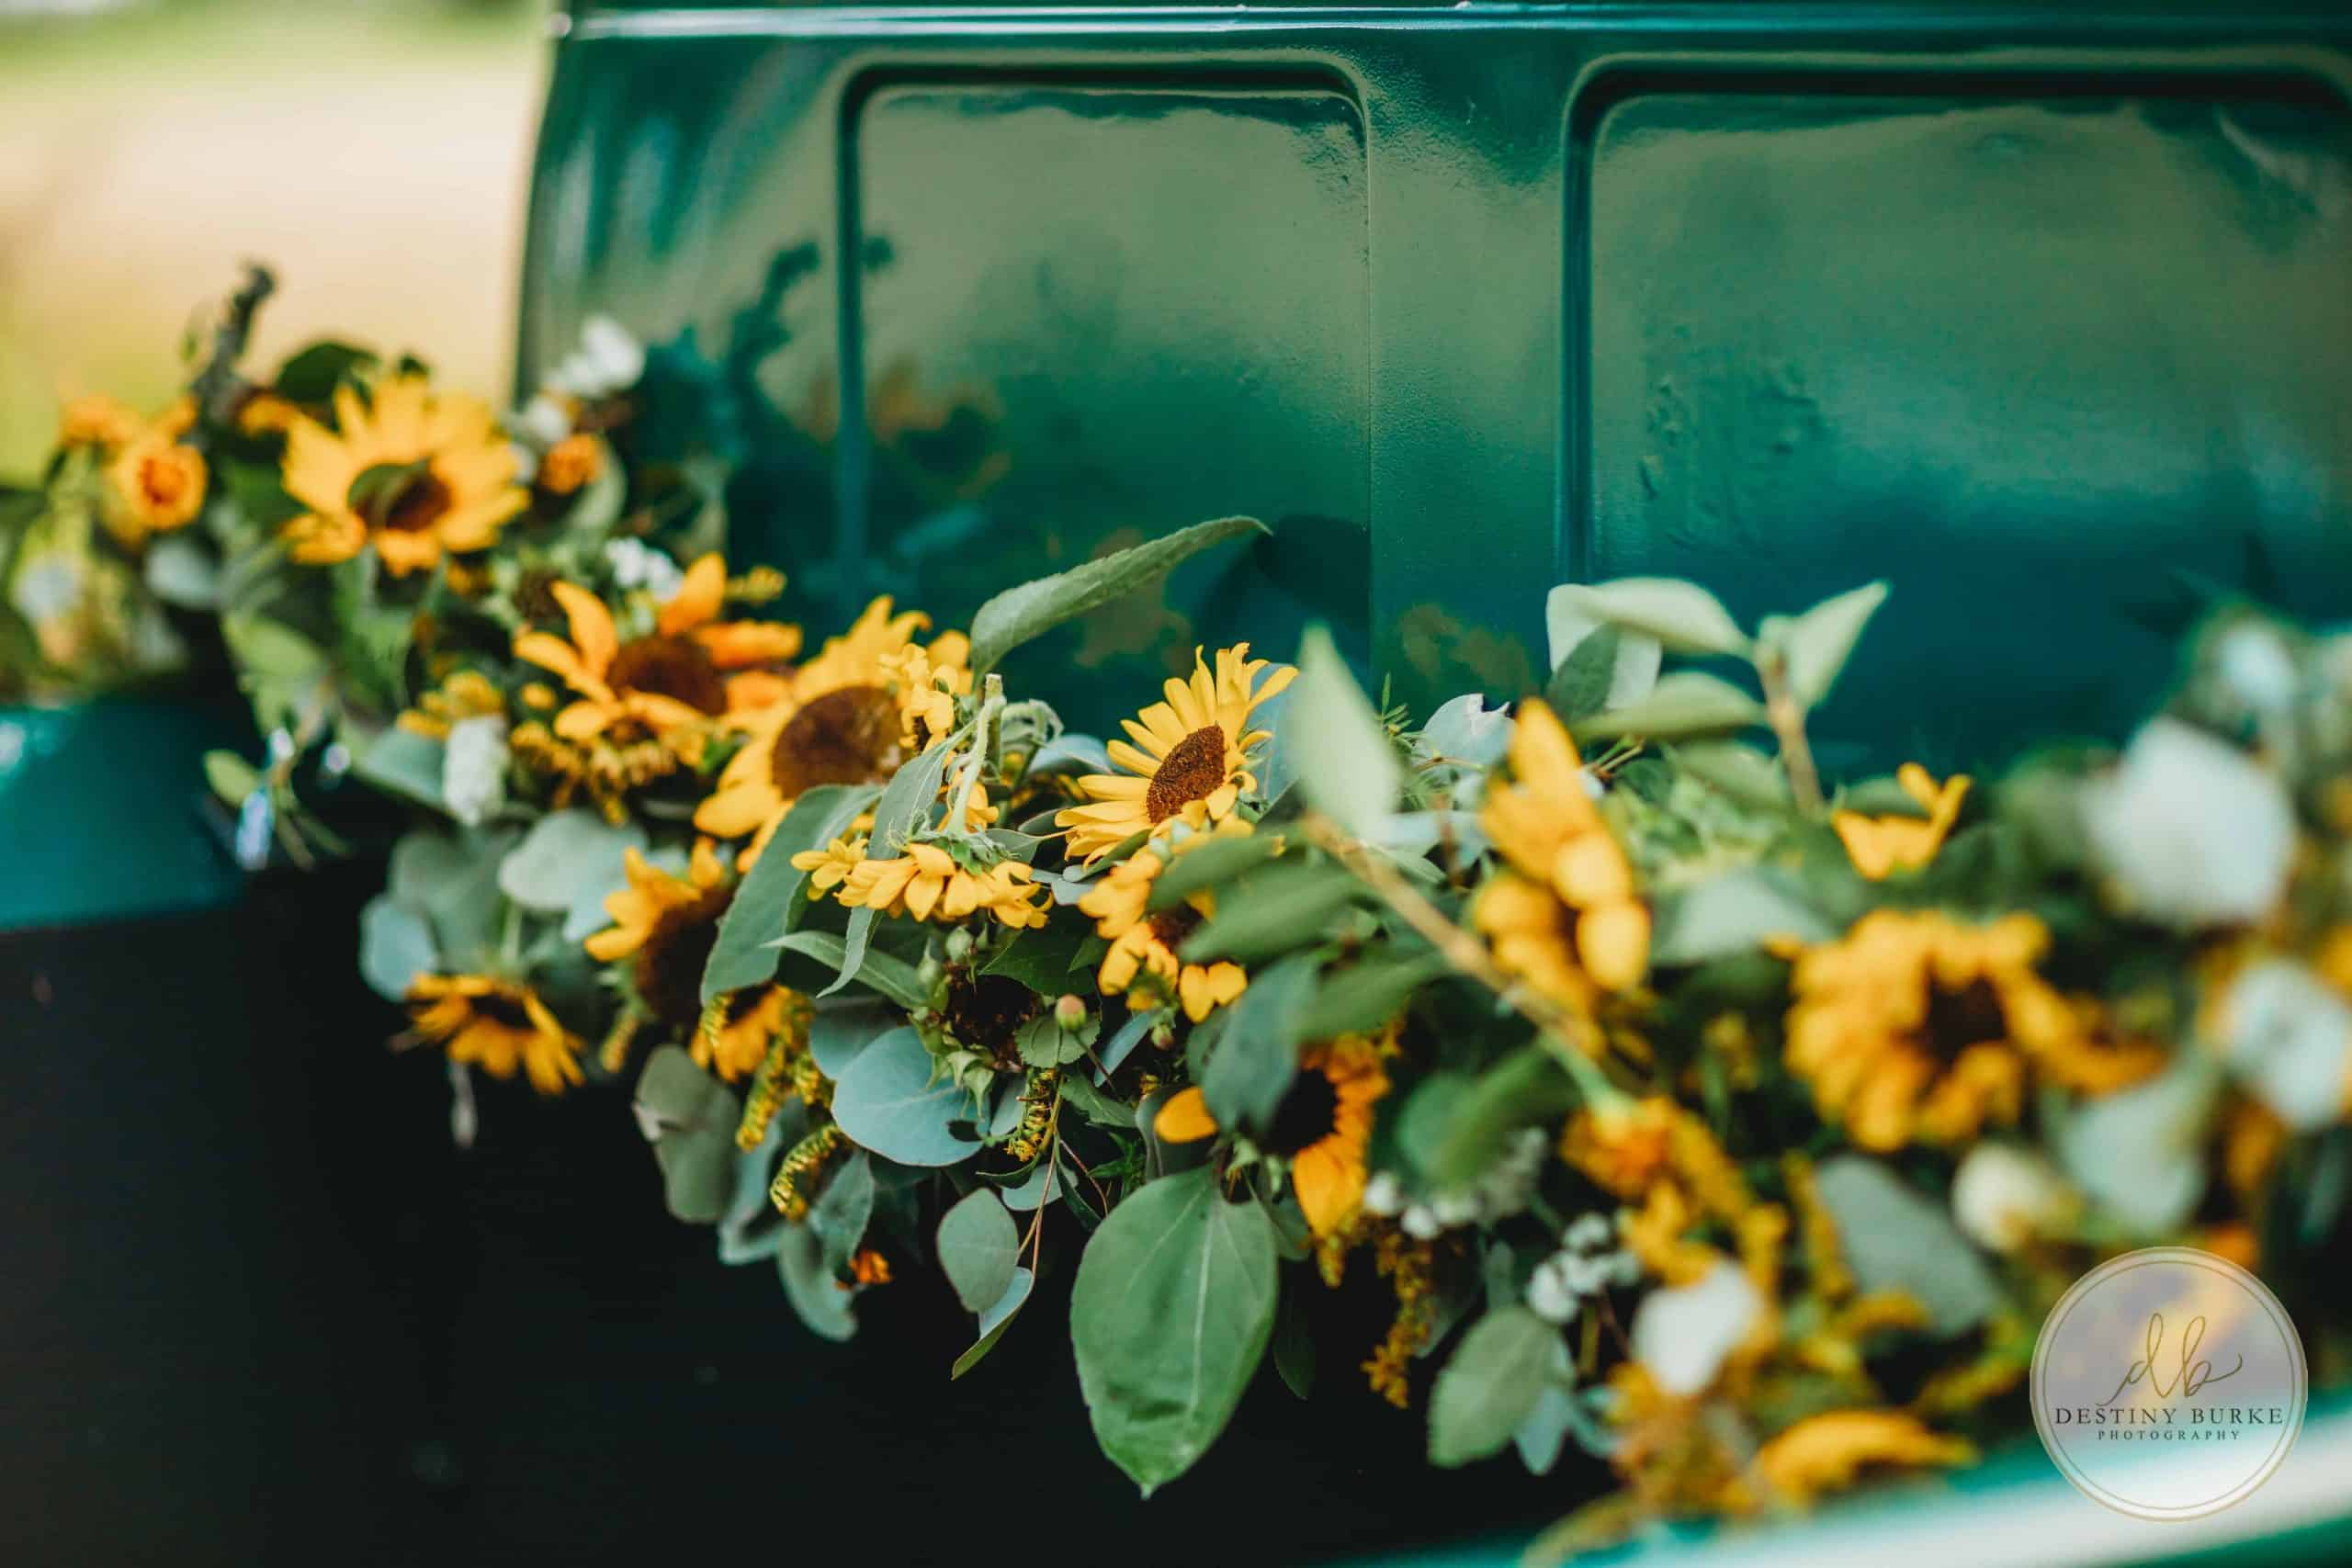 Truck, Florals, flowers, couple, photo session, anniversary session, sunflowers, dress, studabaker, vintage truck, vintage, sungrove blossoms